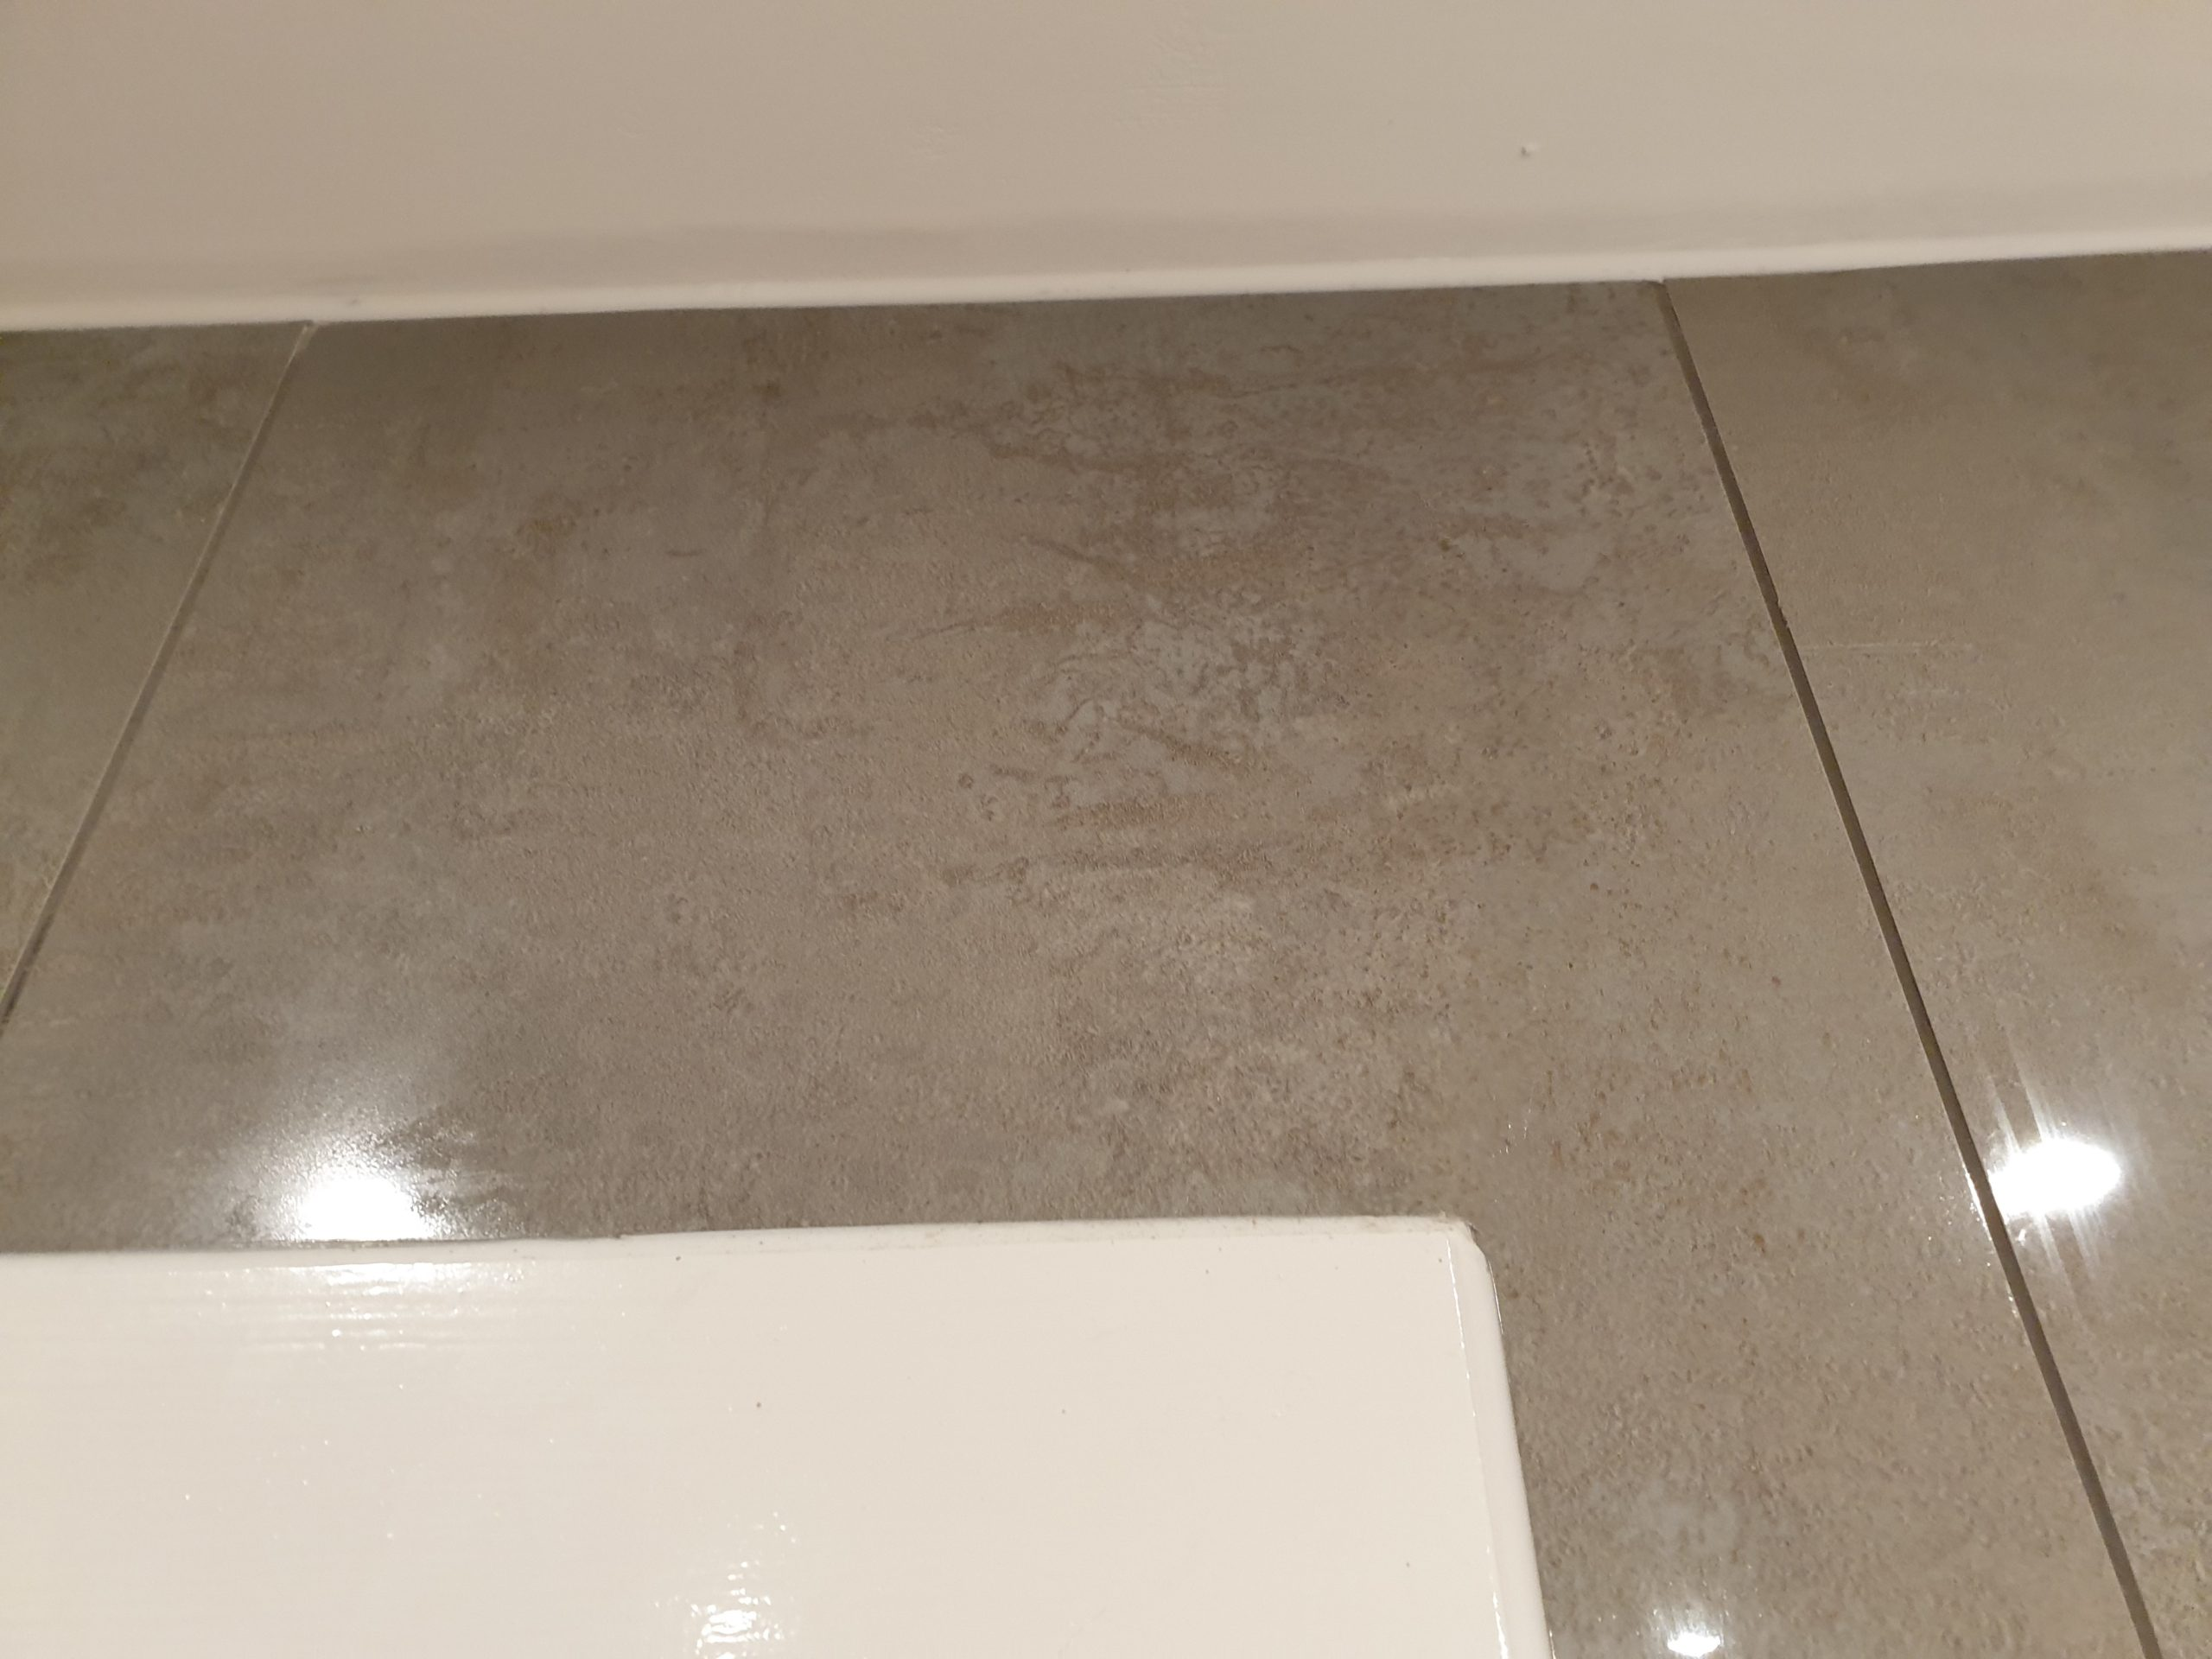 CRACKED BATHROOM WALL FLOOR TILE REPAIR AFTER